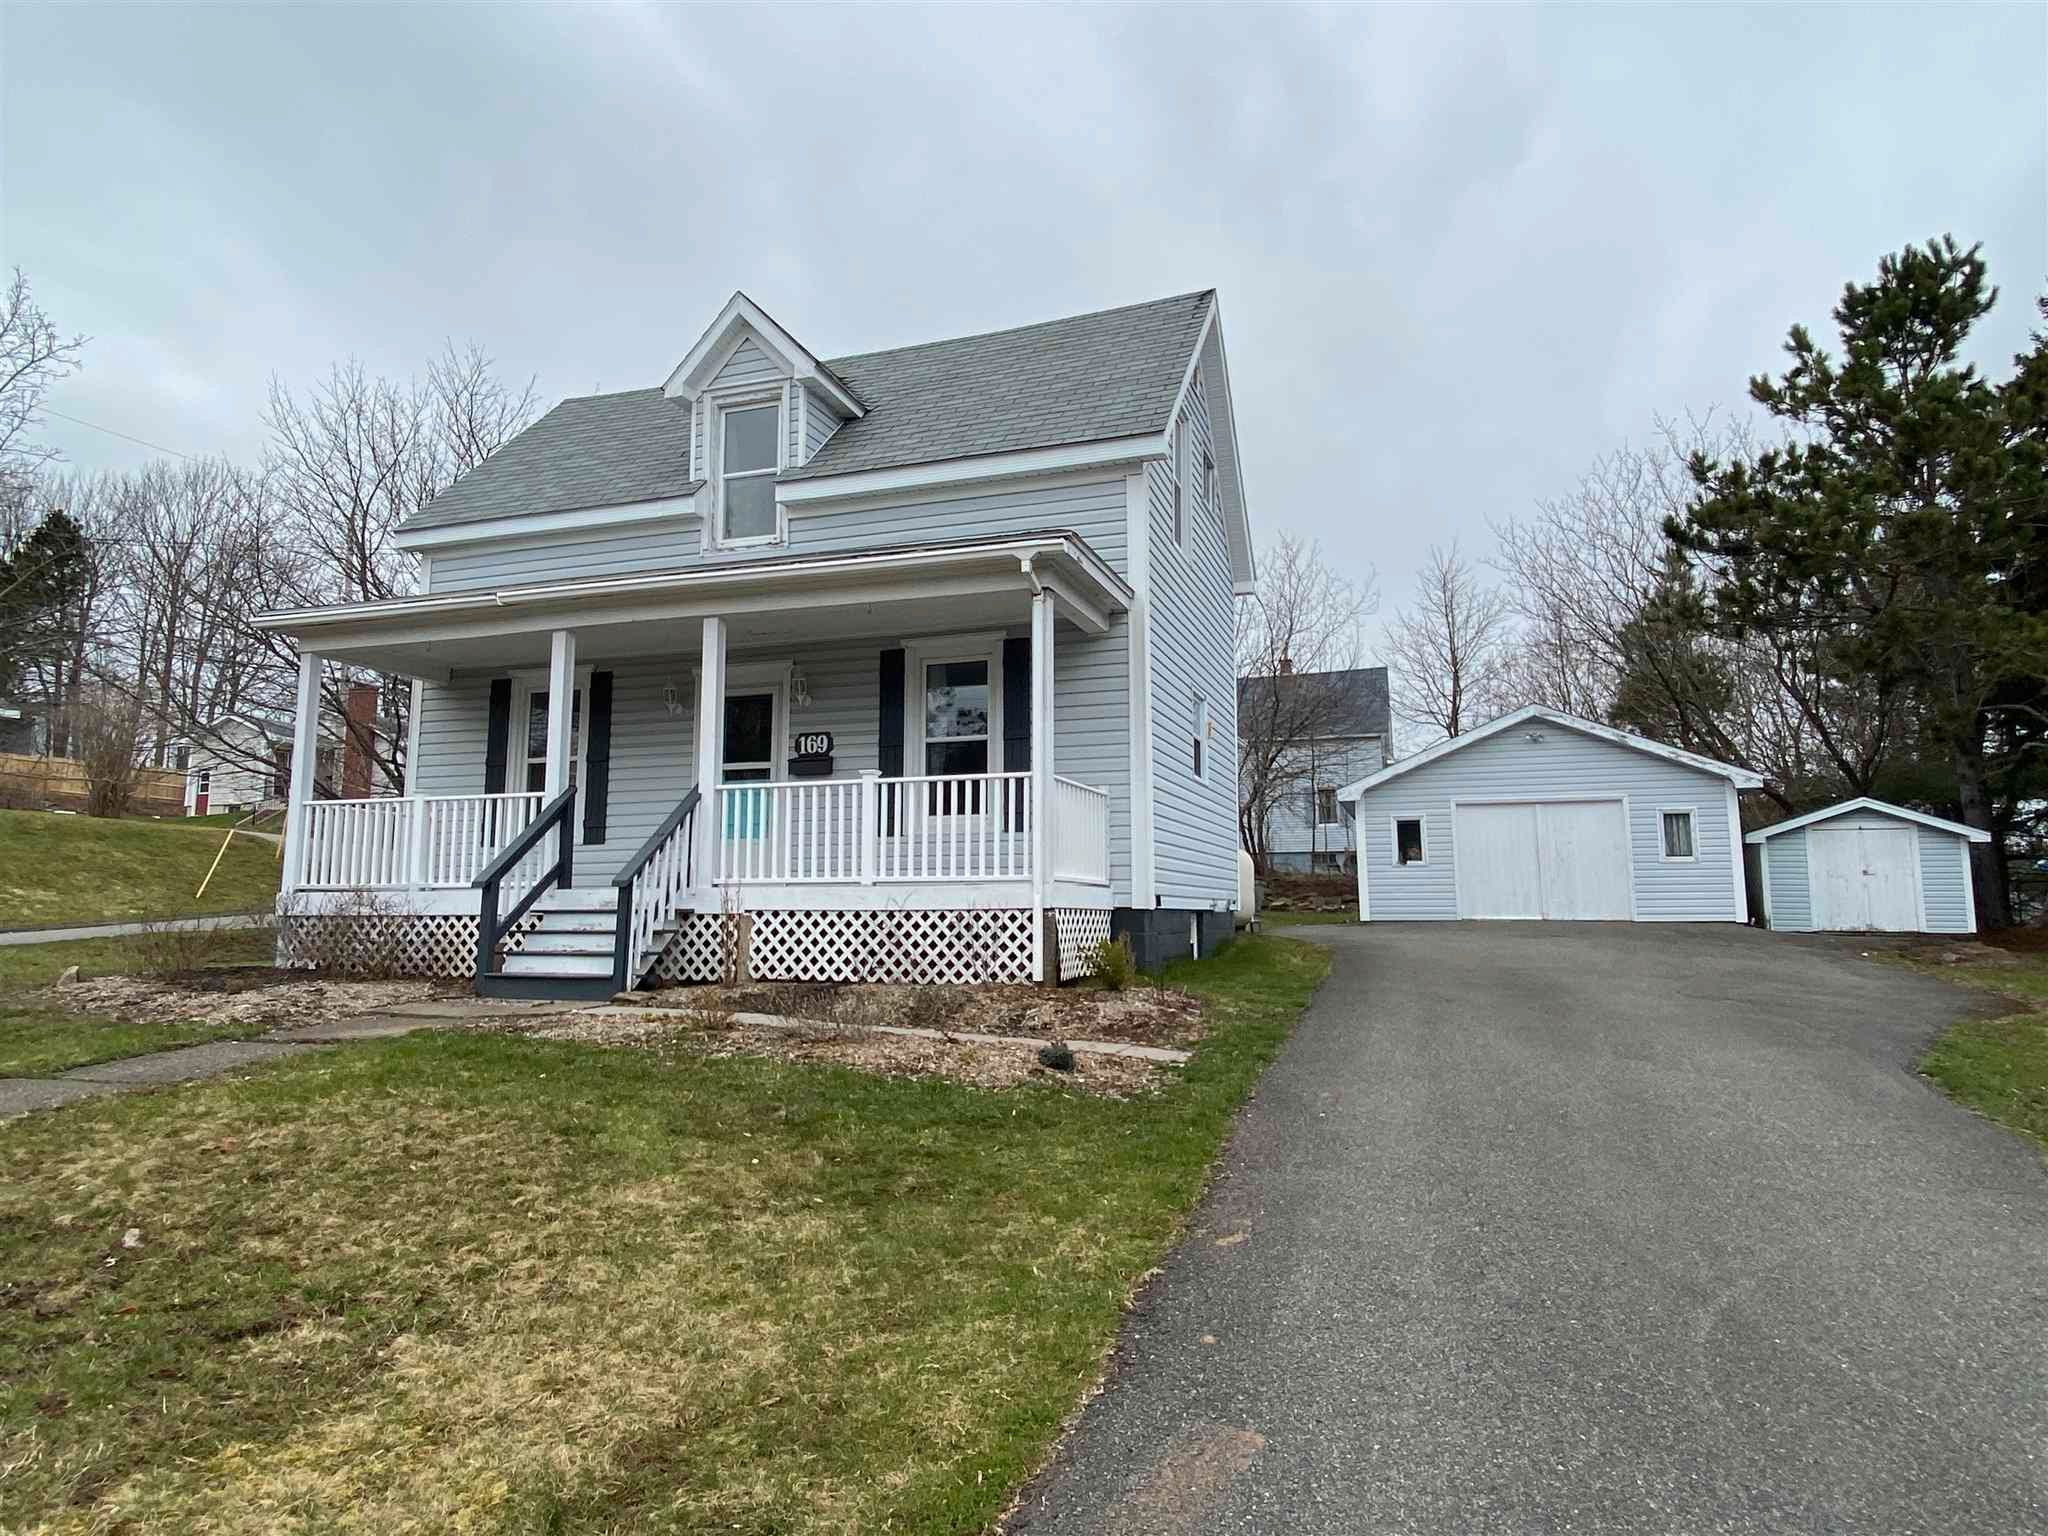 Main Photo: 169 Willow Avenue in New Glasgow: 106-New Glasgow, Stellarton Residential for sale (Northern Region)  : MLS®# 202107598